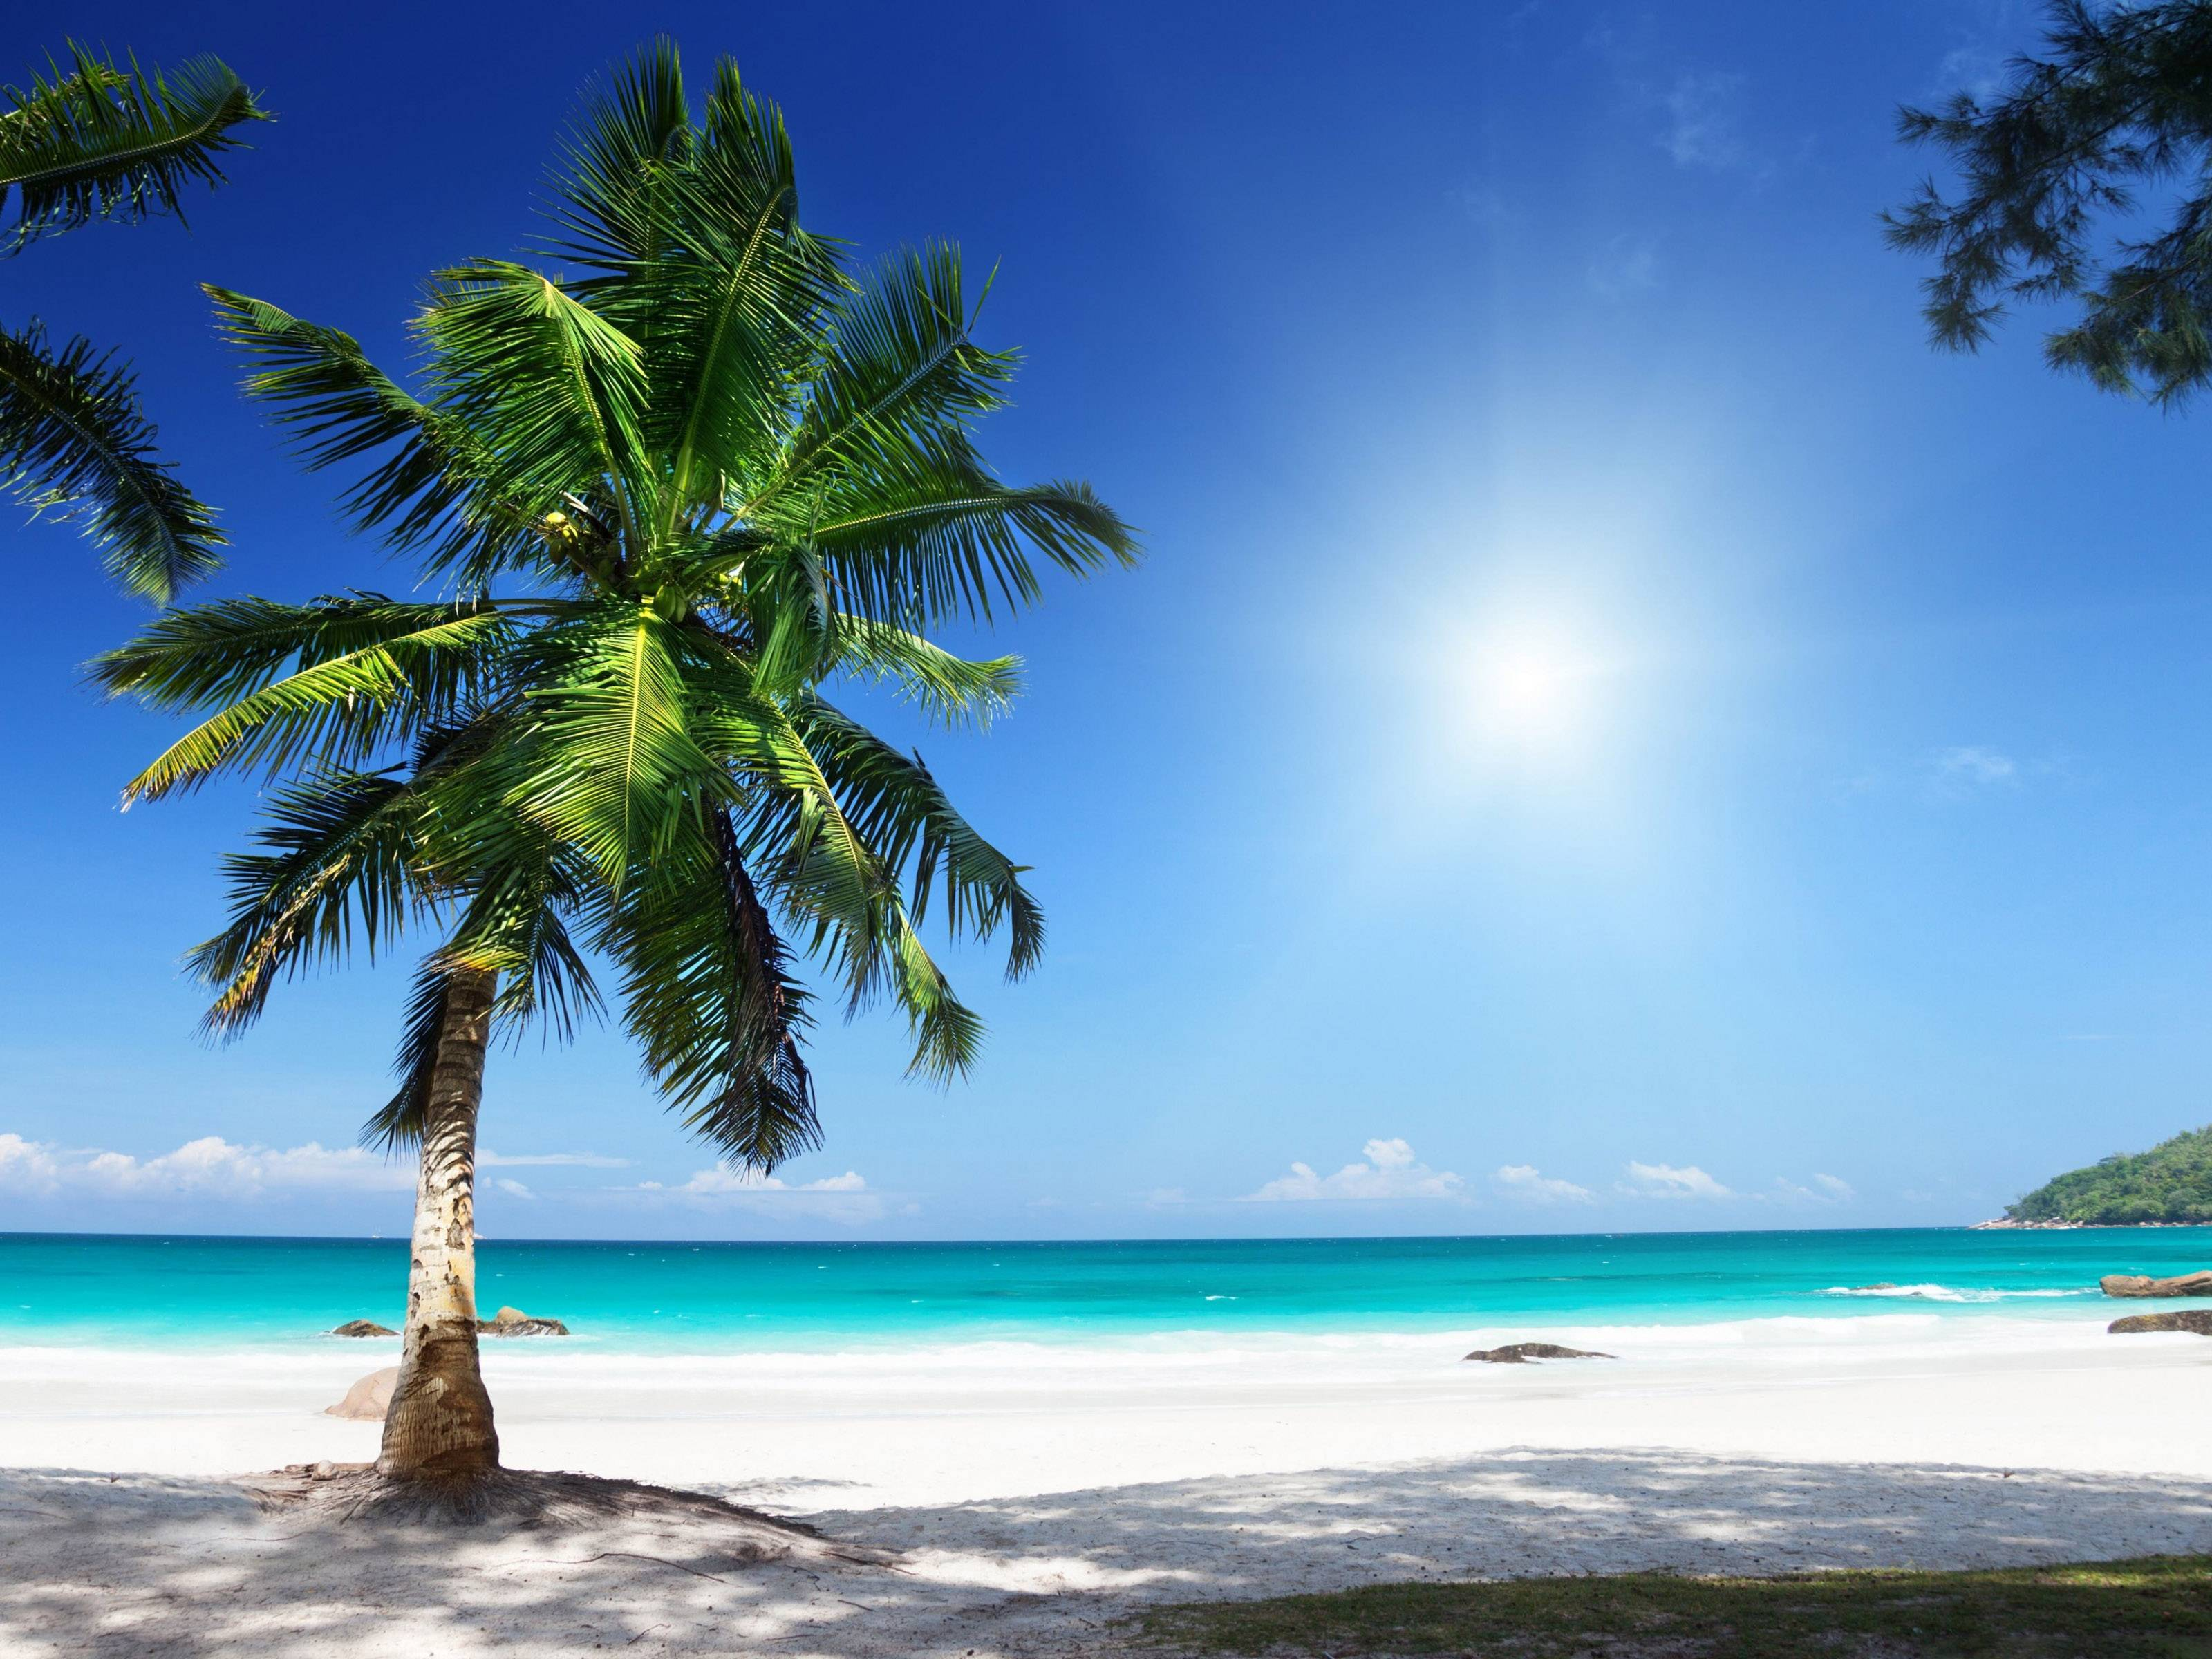 Sunny Beach Wallpapers - Wallpaper Cave